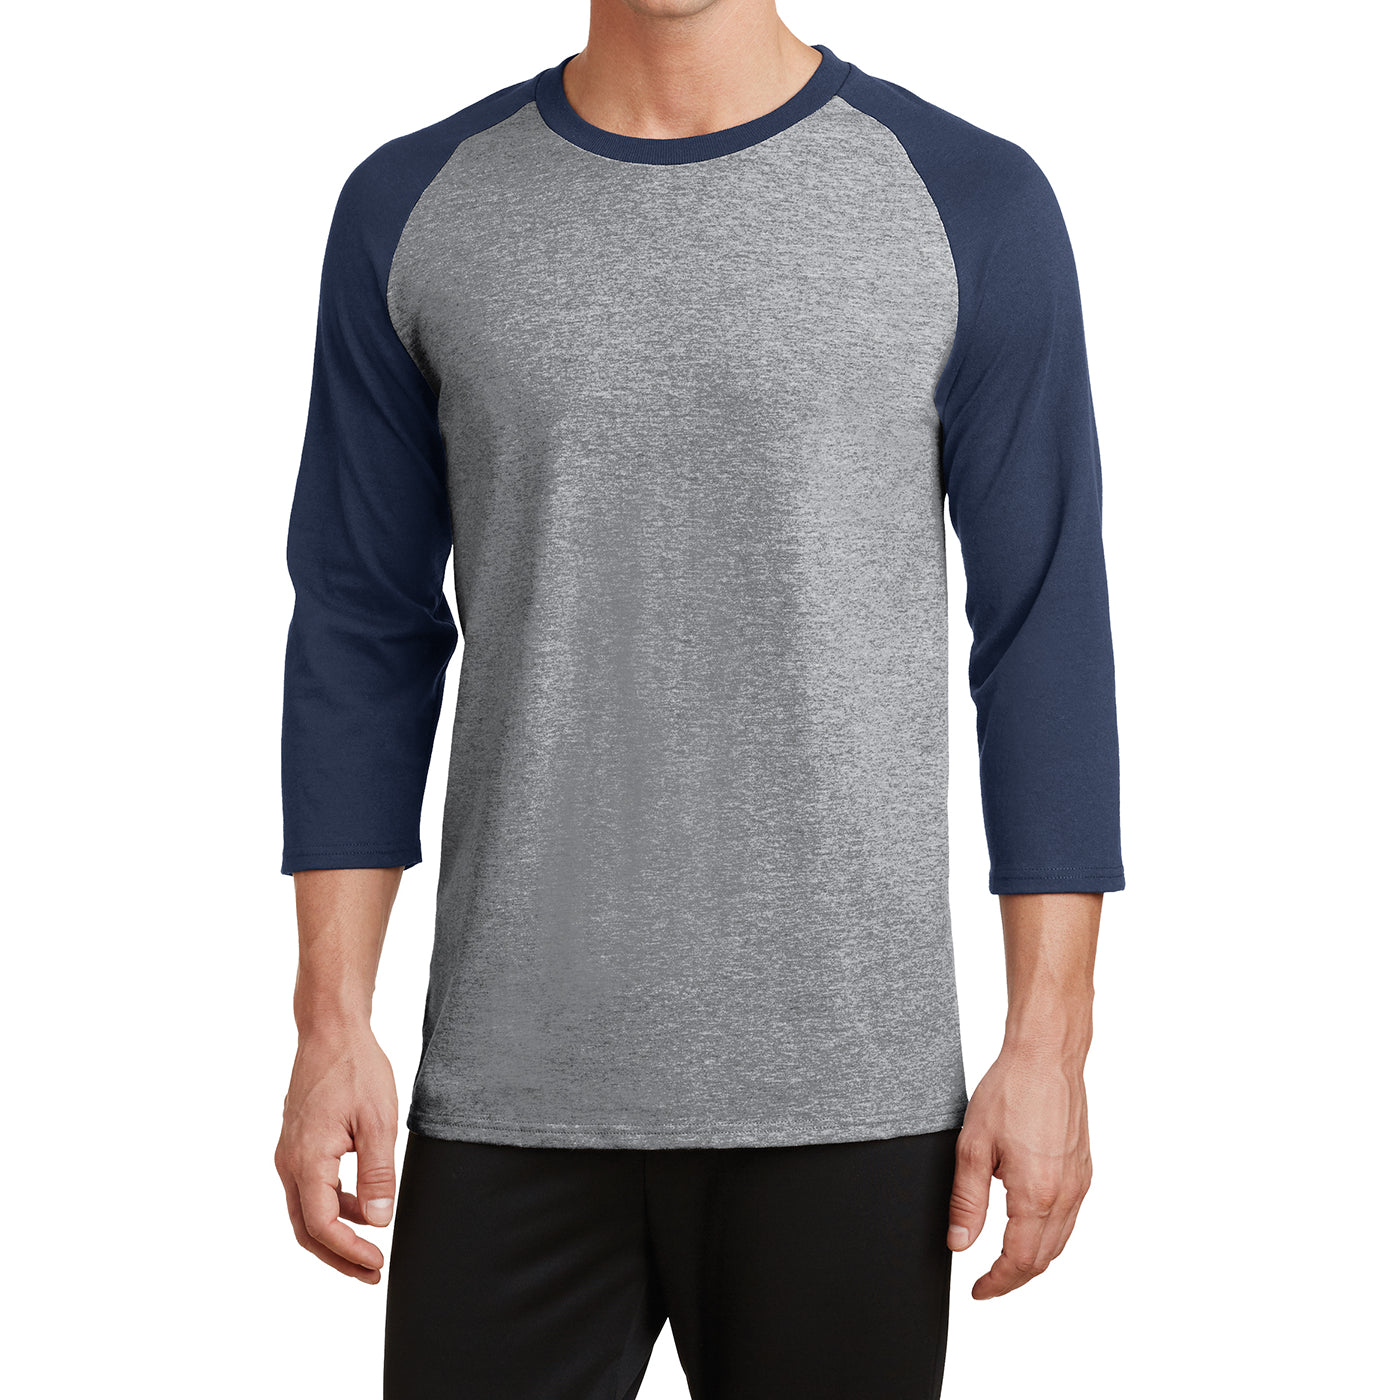 Men's Core Blend 3/4-Sleeve Raglan Tee - Athletic Heather/ Navy - Front